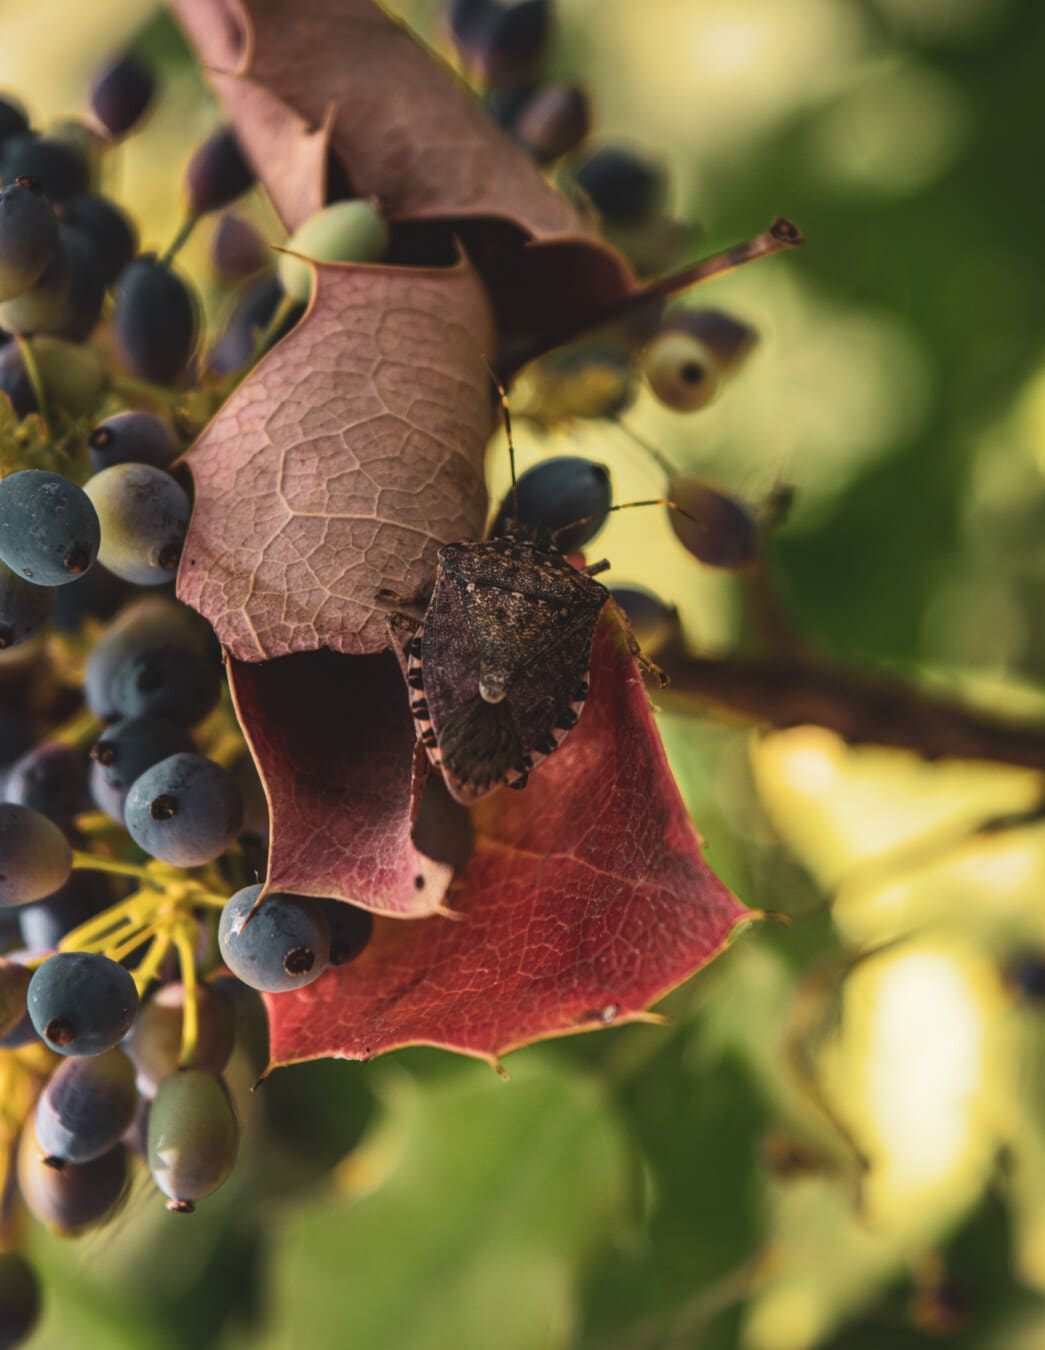 light brown, berries, leaf, reddish, close-up, beetle, insect, nature, flora, color